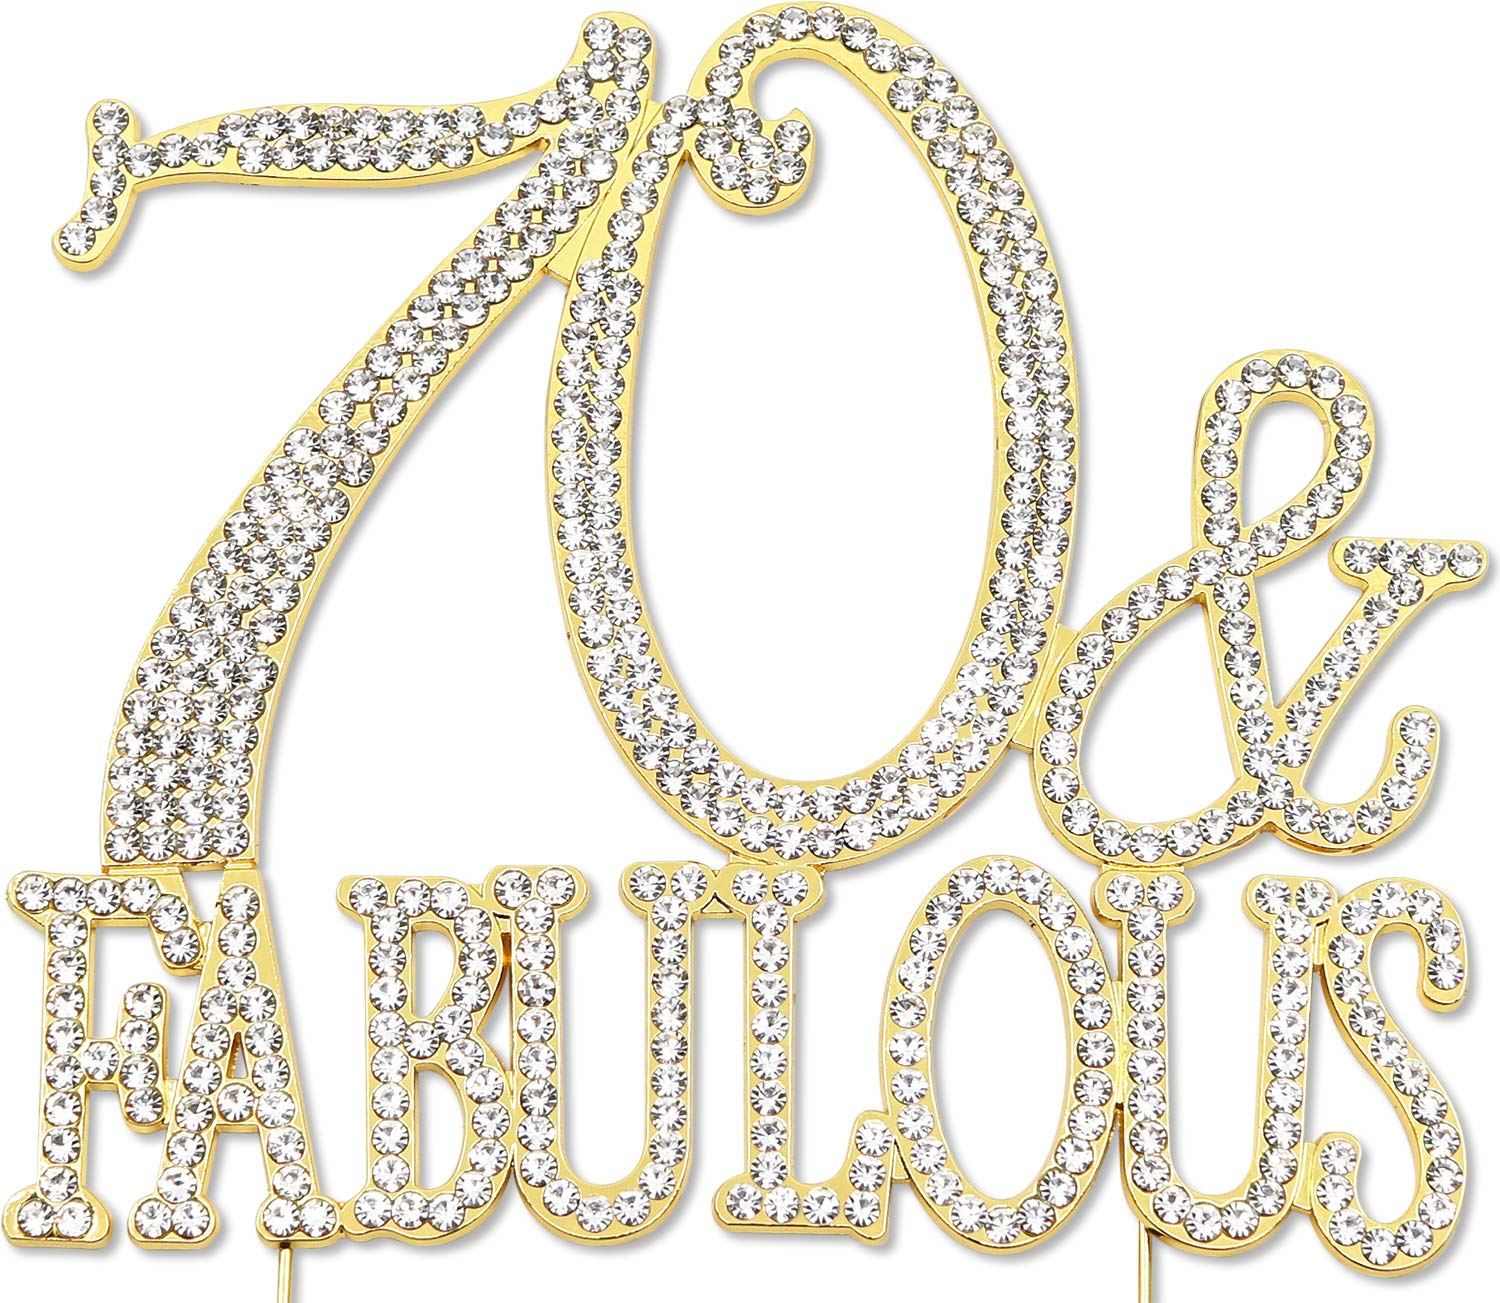 70 and Fabulous - 70th Birthday Cake Topper, Crystal Rhinestone Gold